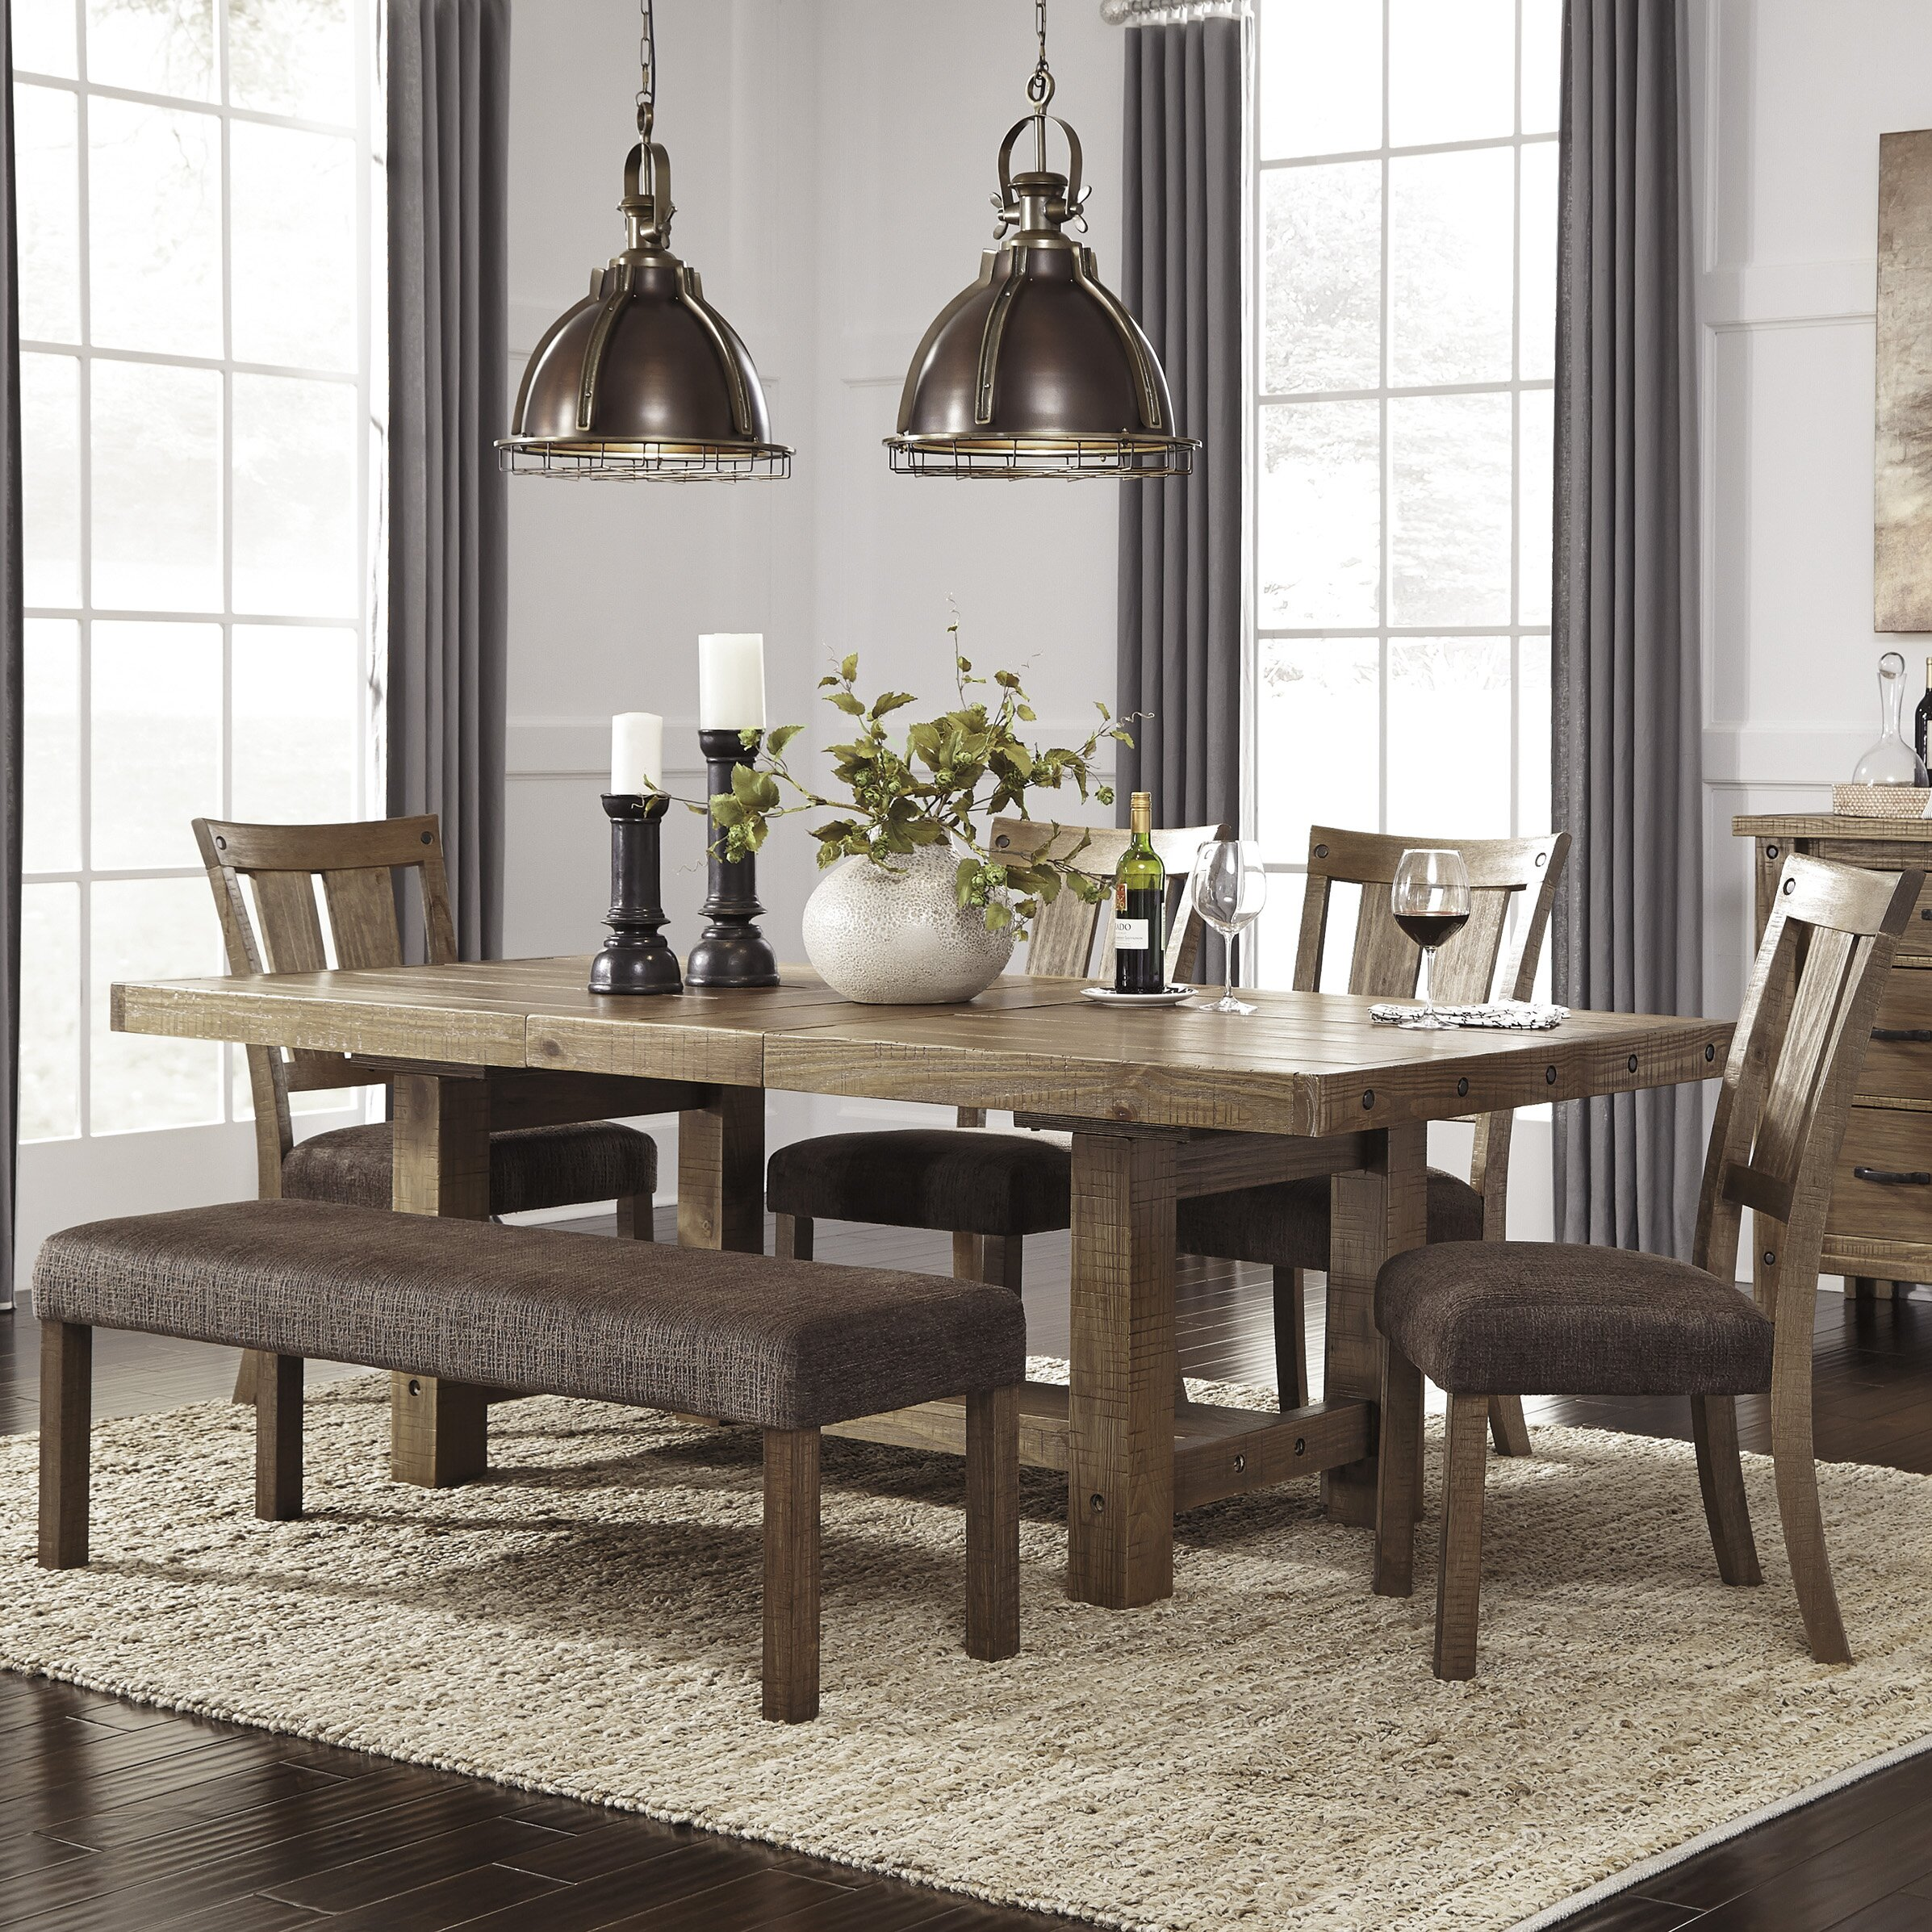 Dining Room Table Sets: Signature Design By Ashley 9 Piece Dining Set & Reviews